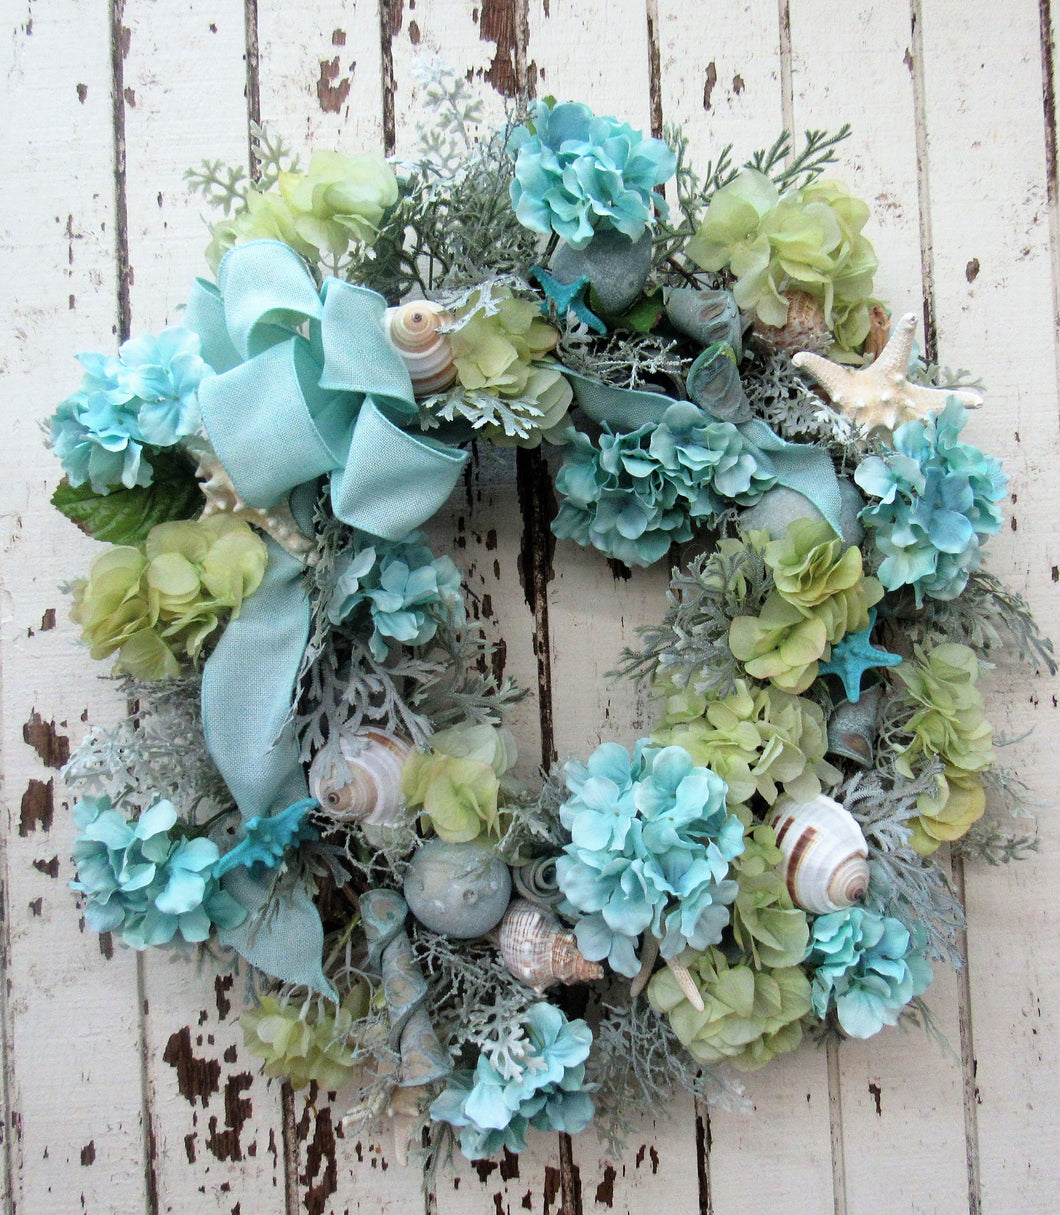 Gallery/AV4 - April's Garden Wreath